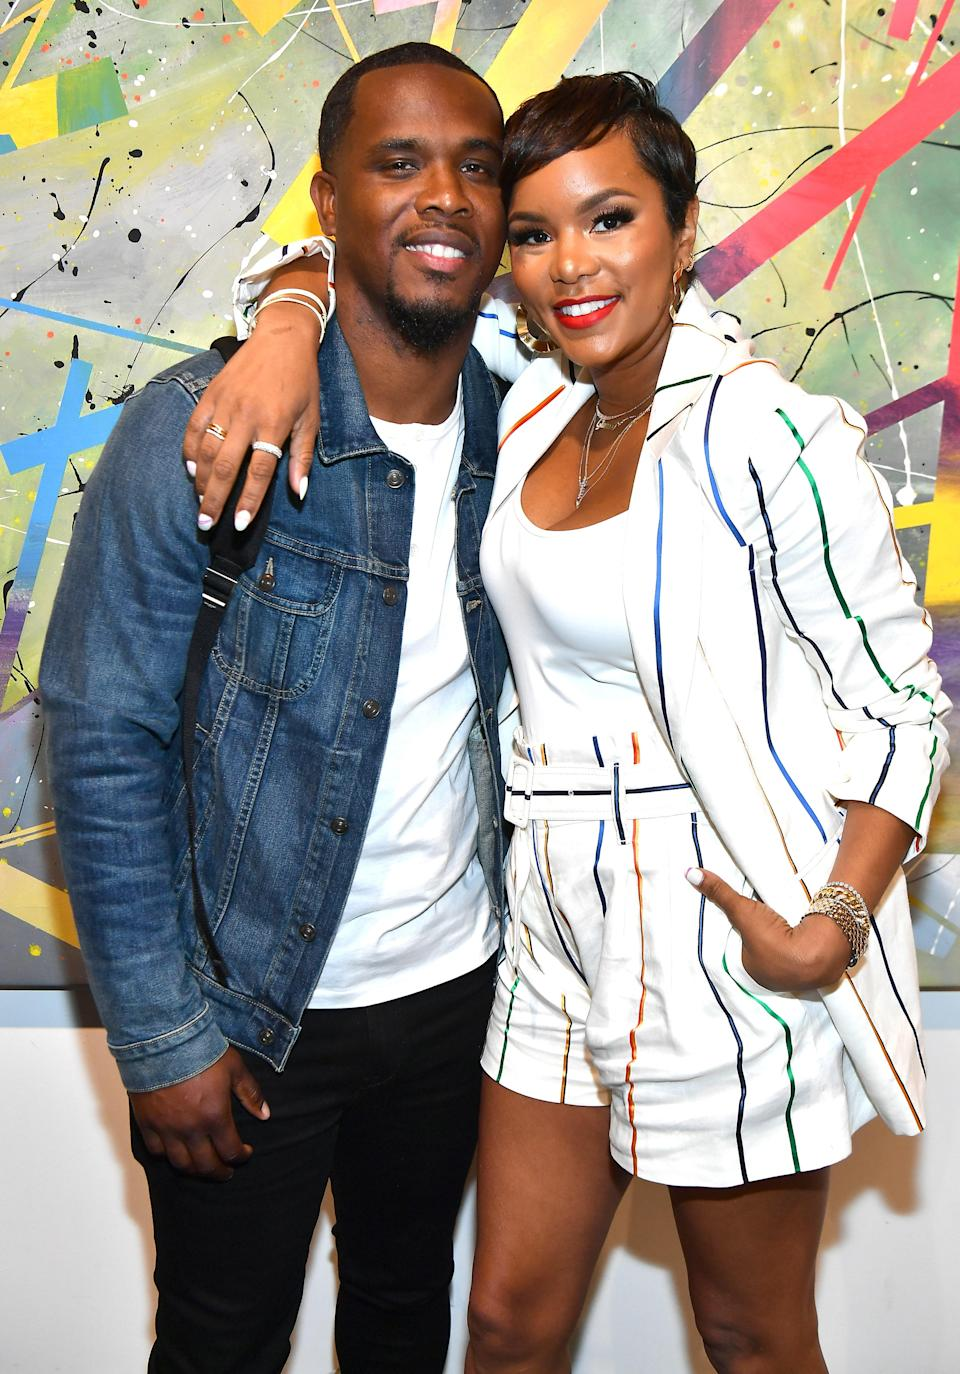 """""""After very prayerful consideration, Tommicus and I have decided to get a divorce,"""" Luckett announced in a <a href=""""https://www.instagram.com/p/CJ6ZXyqHC9o/?utm_source=ig_embed"""" rel=""""nofollow noopener"""" target=""""_blank"""" data-ylk=""""slk:statement"""" class=""""link rapid-noclick-resp"""">statement</a> on January 11. """"It is my deepest desire for us to be loving co-parents and keep a peaceful environment out of respect for our children. Please understand our need for privacy. Thank you in advance for your prayers, support & space to heal as we tread through this challenging time."""" (The couple shares two kids: Gianna, 2, and Tysun, 1.)"""